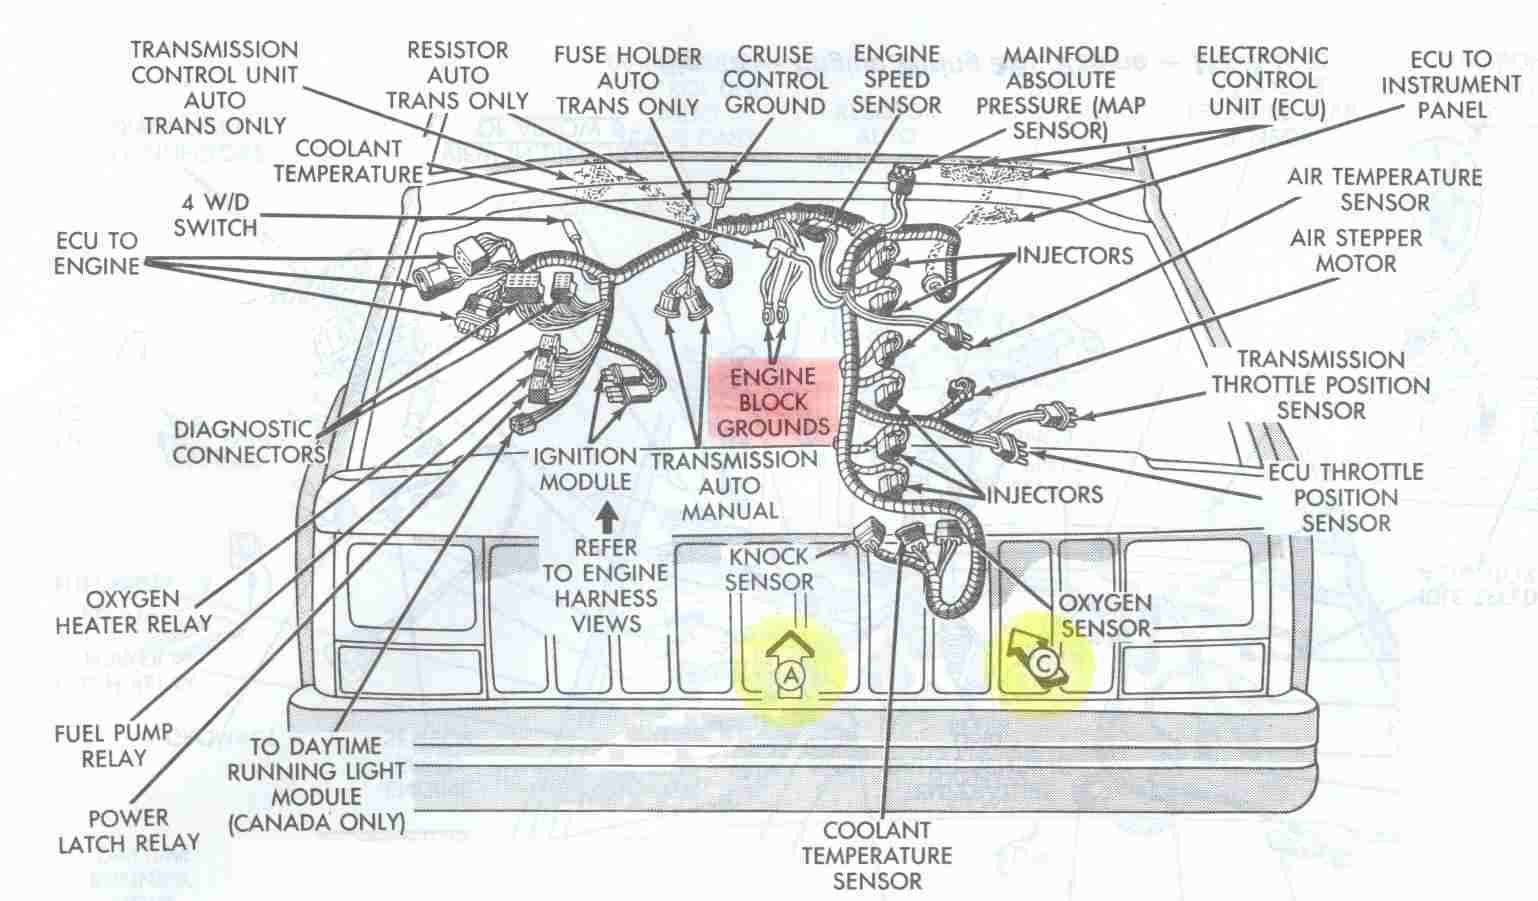 ab0134a7d9e021431187af597eb4aeca engine bay schematic showing major electrical ground points for Jeep Cherokee Stereo Wiring at edmiracle.co